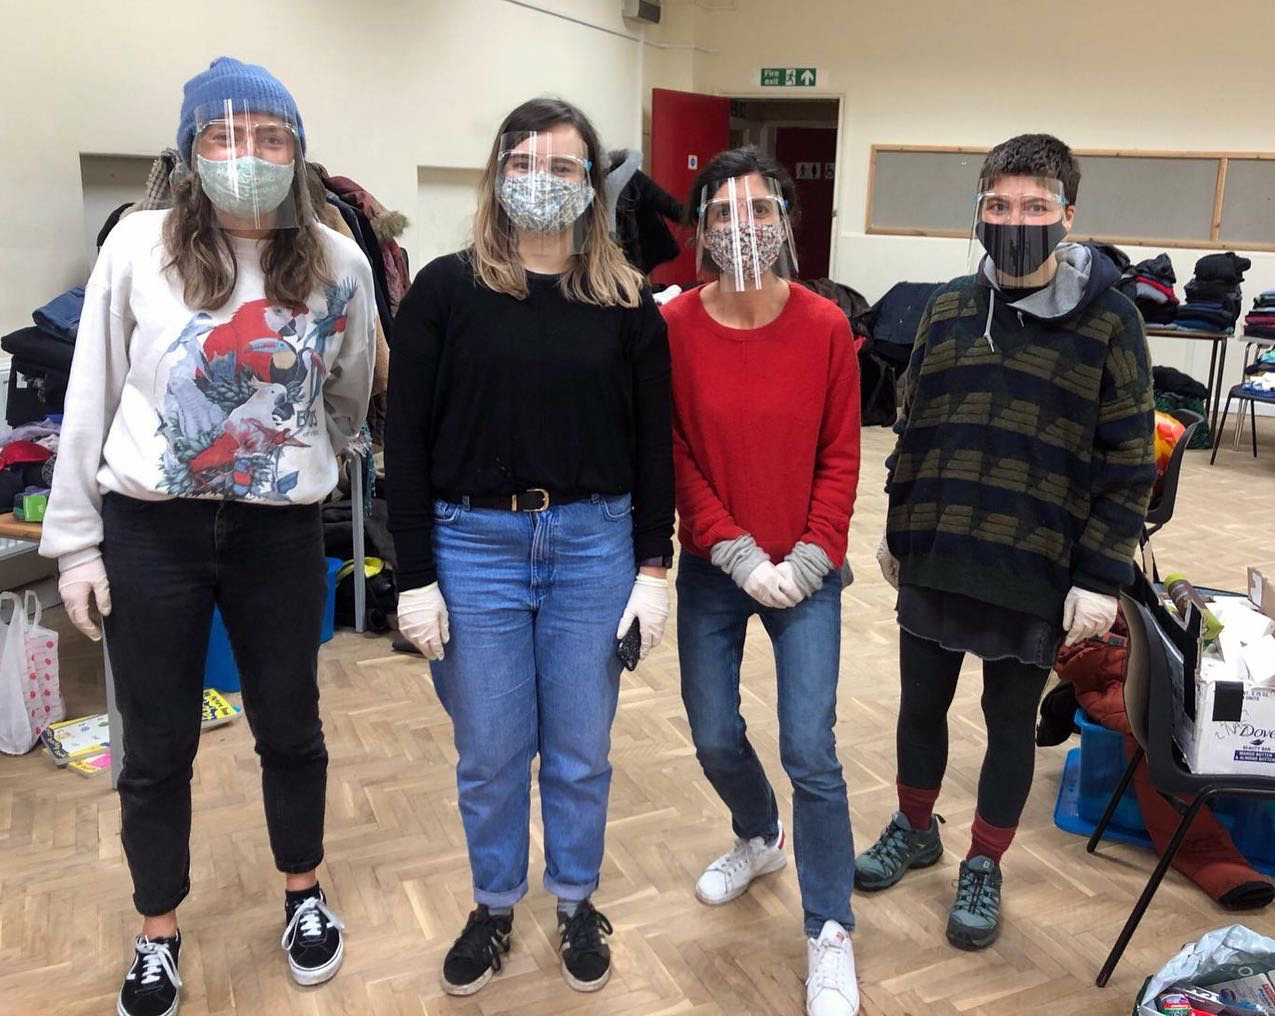 Four volunteers stand together, wearing masks